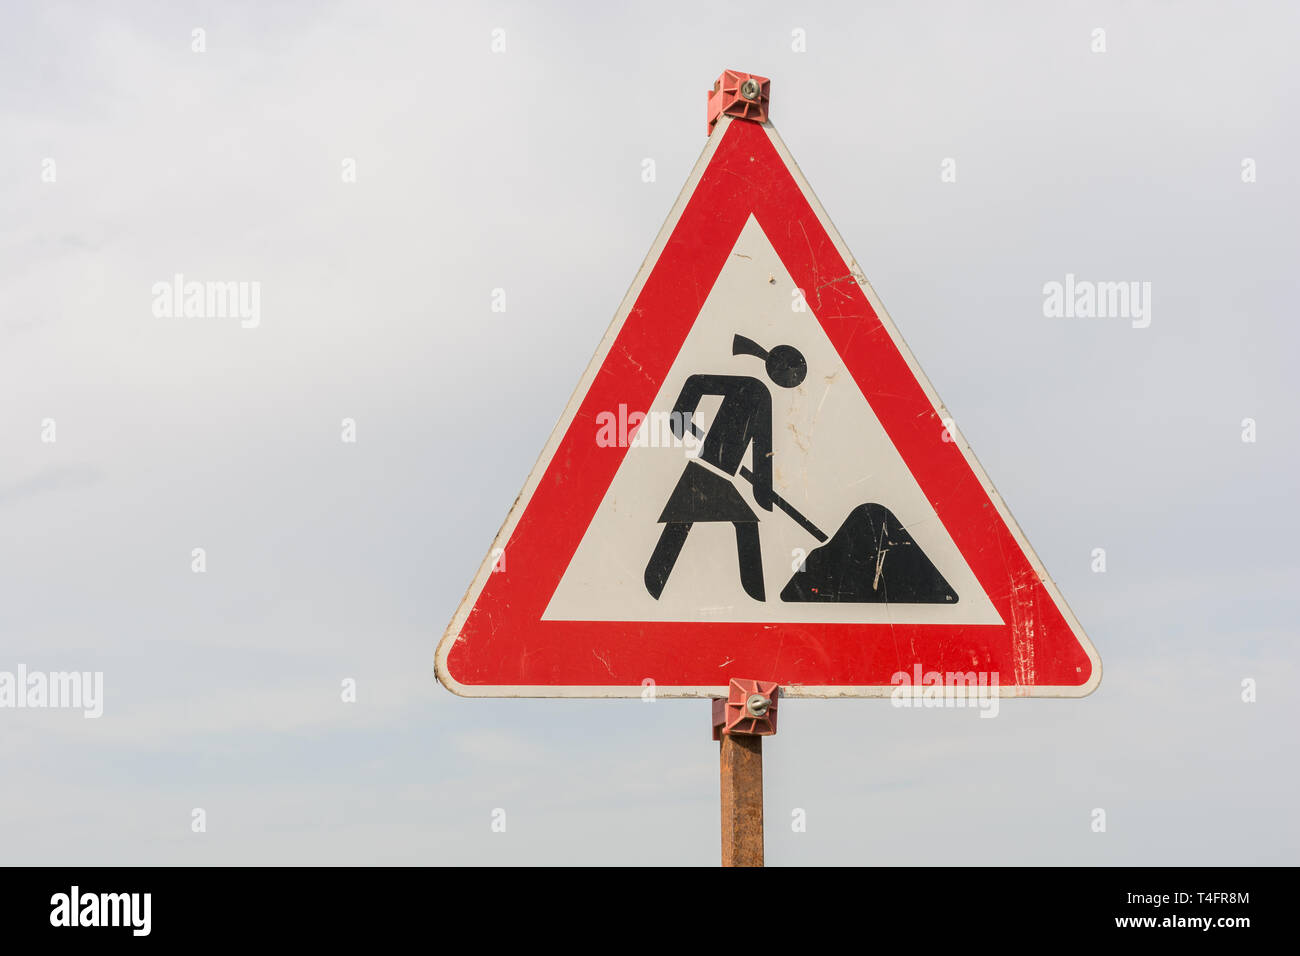 Construction site sign with a female construction worker as a symbol of feminism in professional life - Stock Image